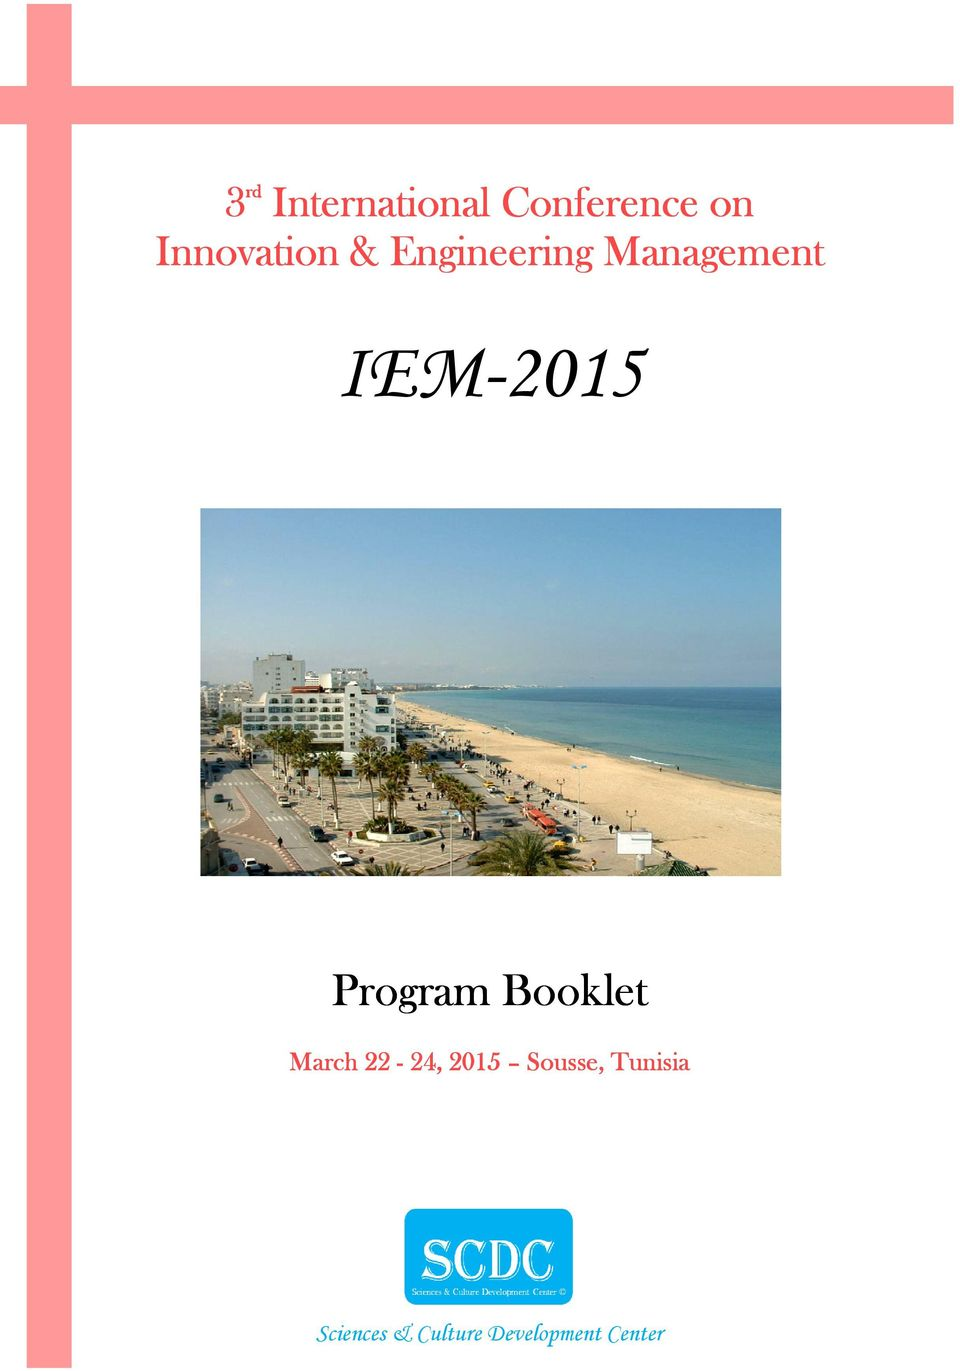 IEM-2015 Program Booklet March 22-24,,